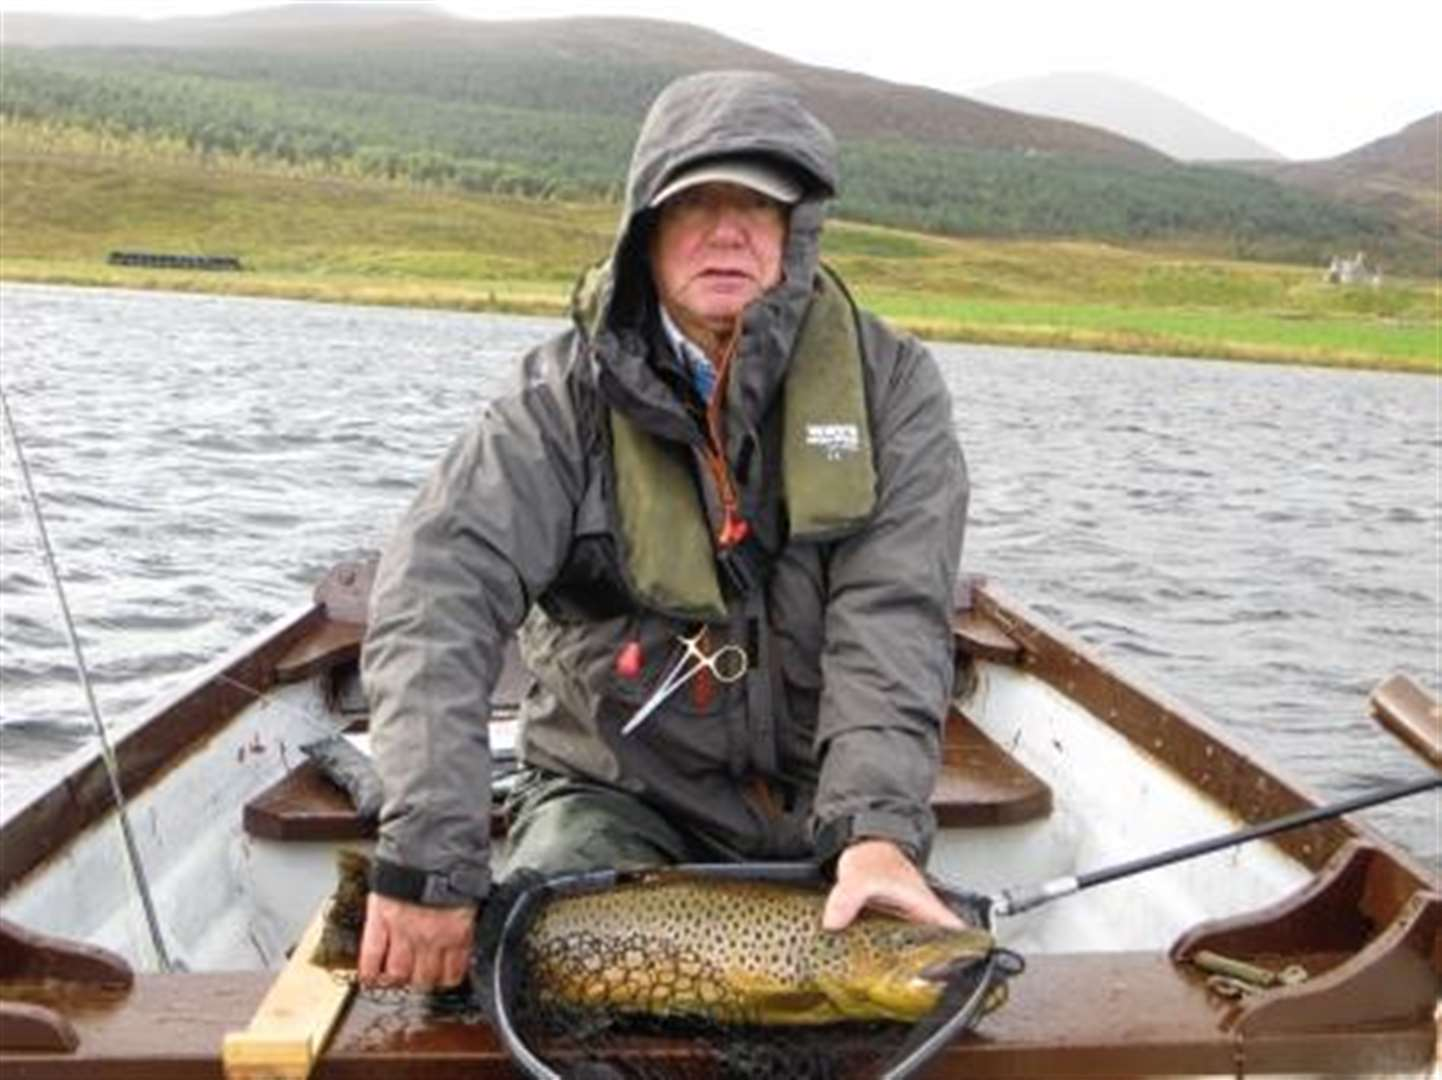 Mixed fortunes on Loch Brora